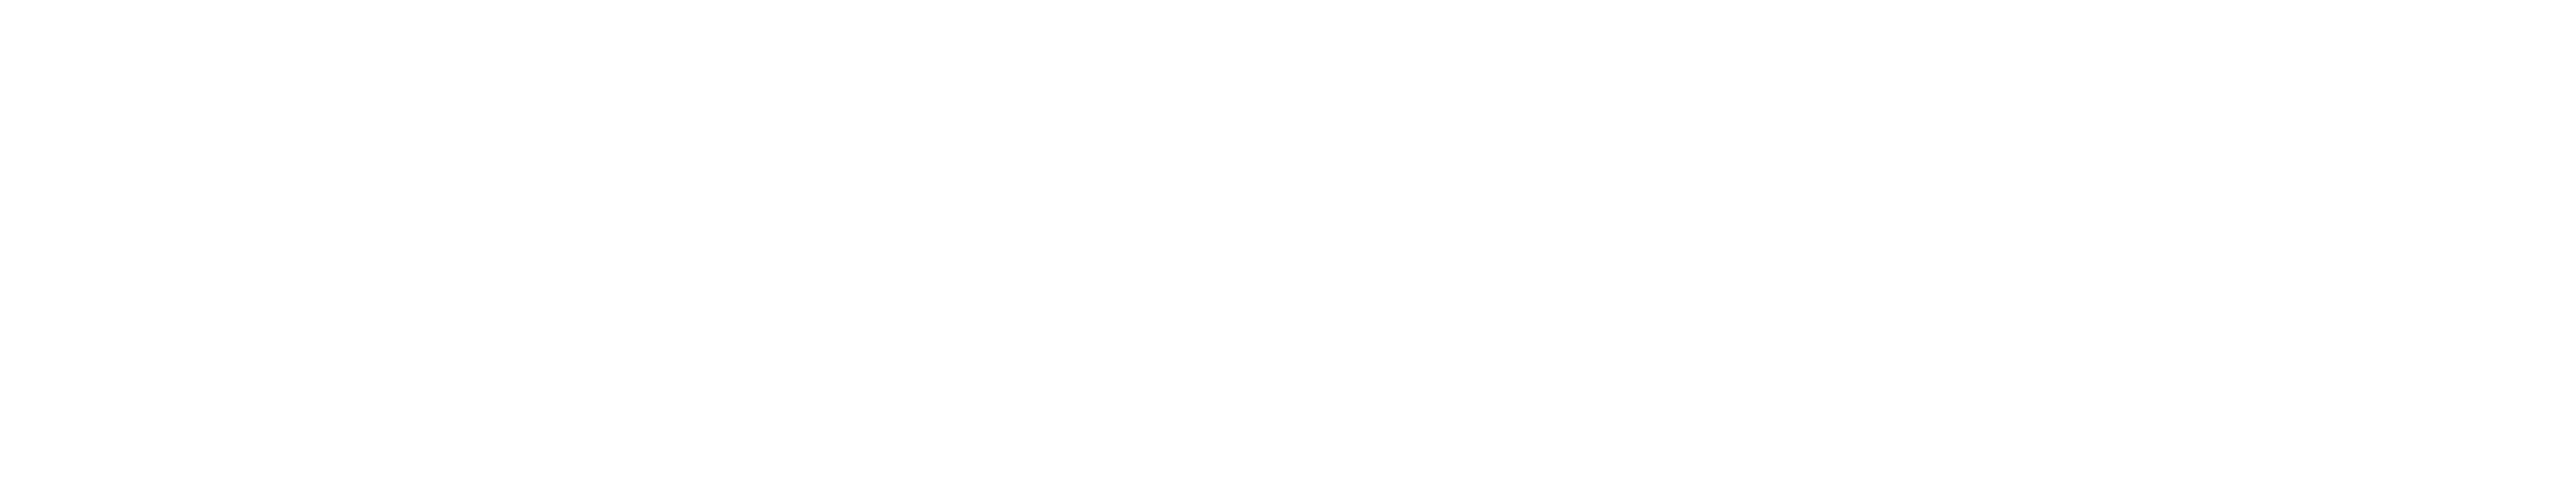 All Capital Gains Tax Solutions